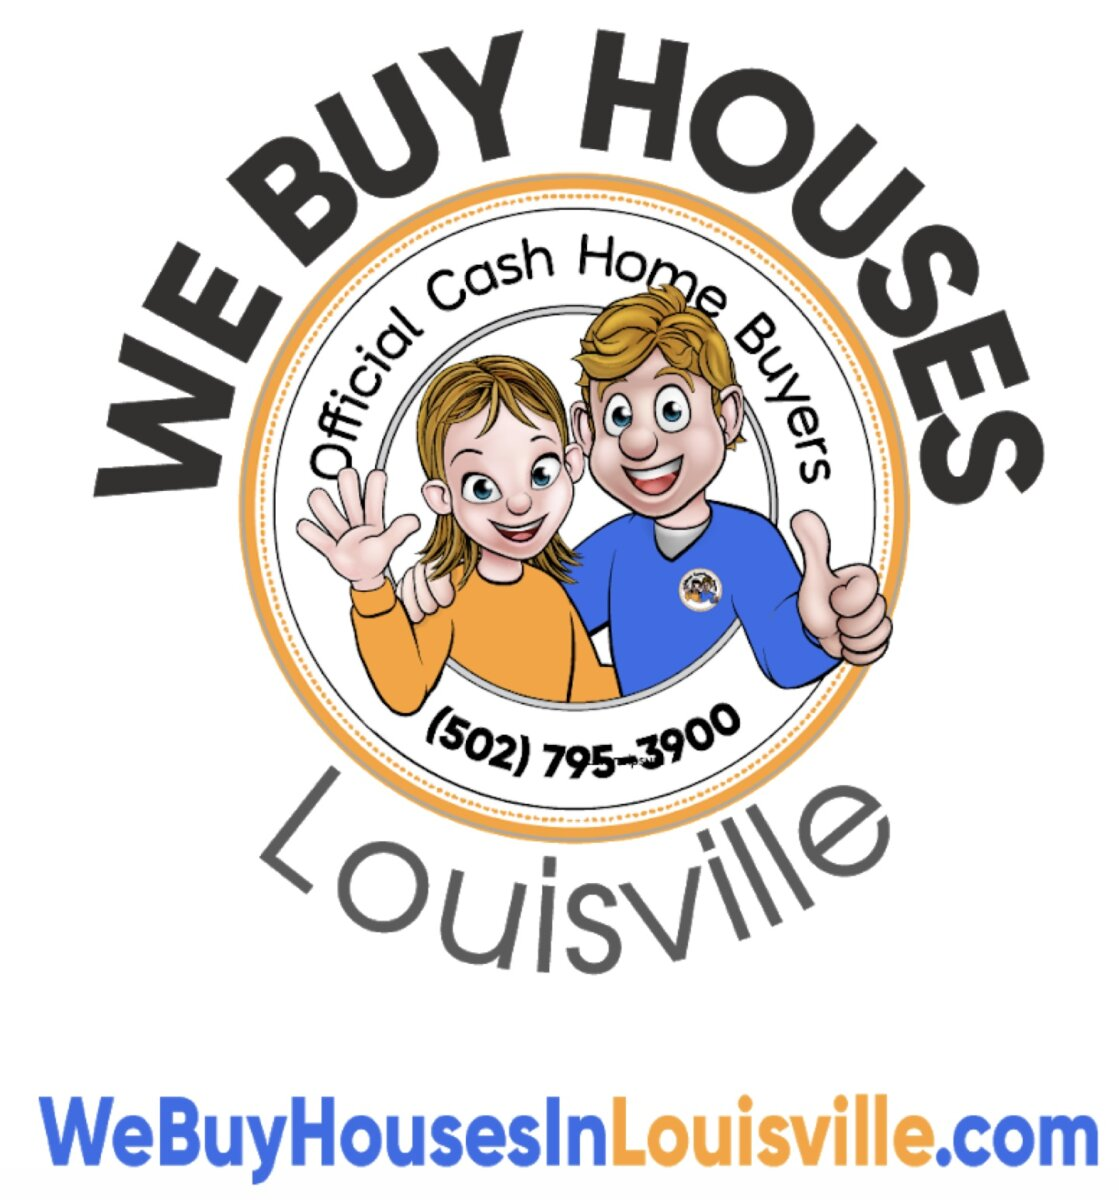 We Buy Houses Louisville logo